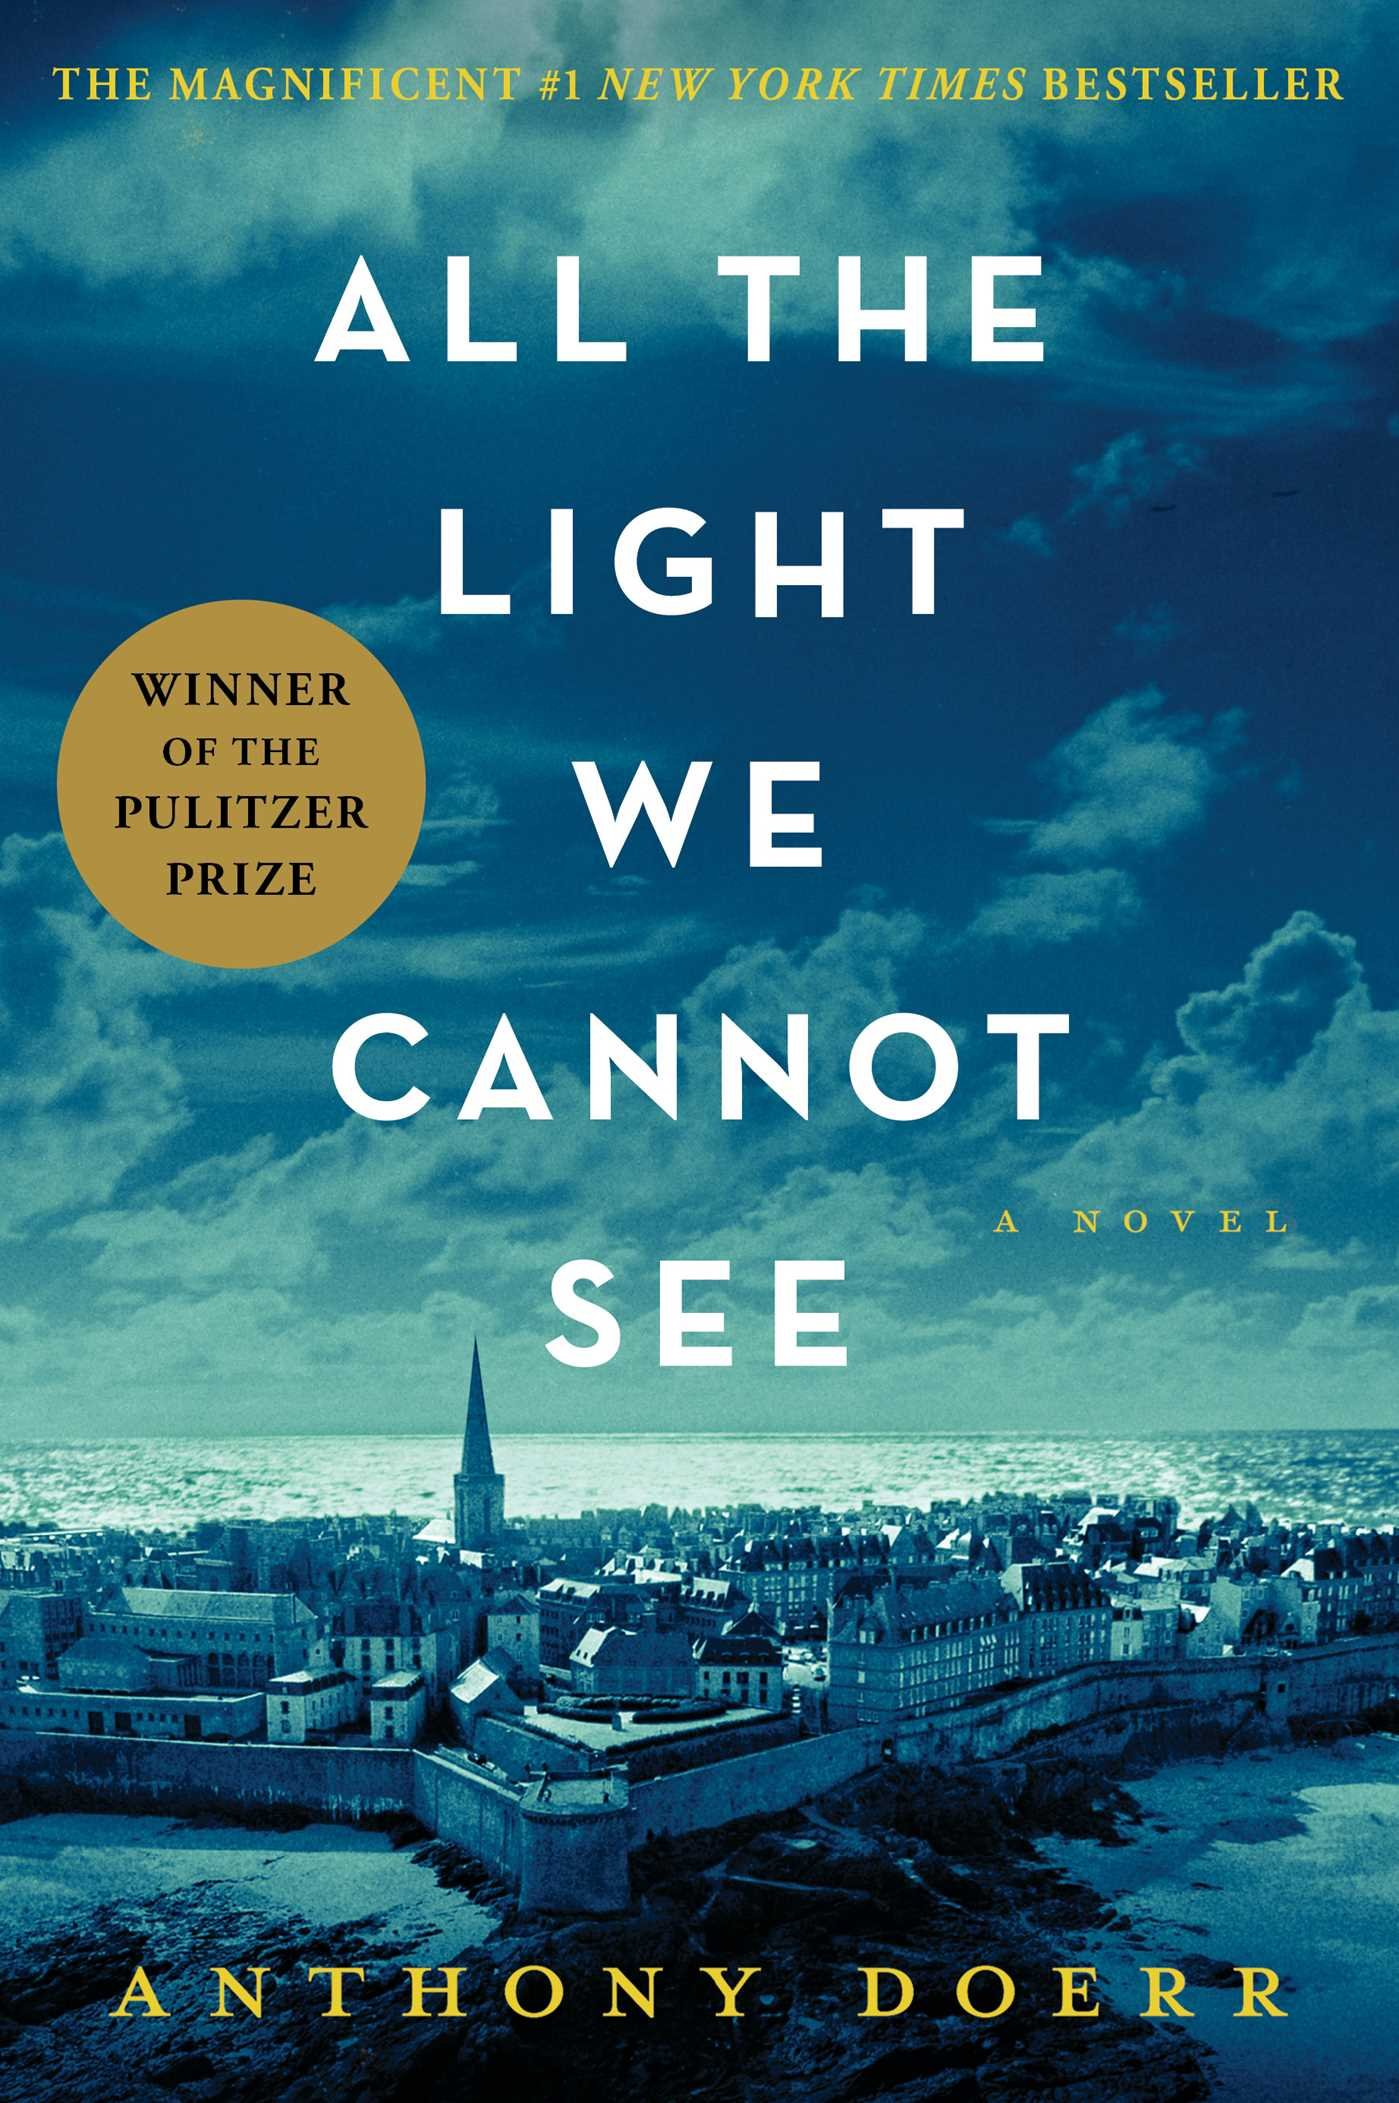 give a copy of the popular book All the light we cannot see